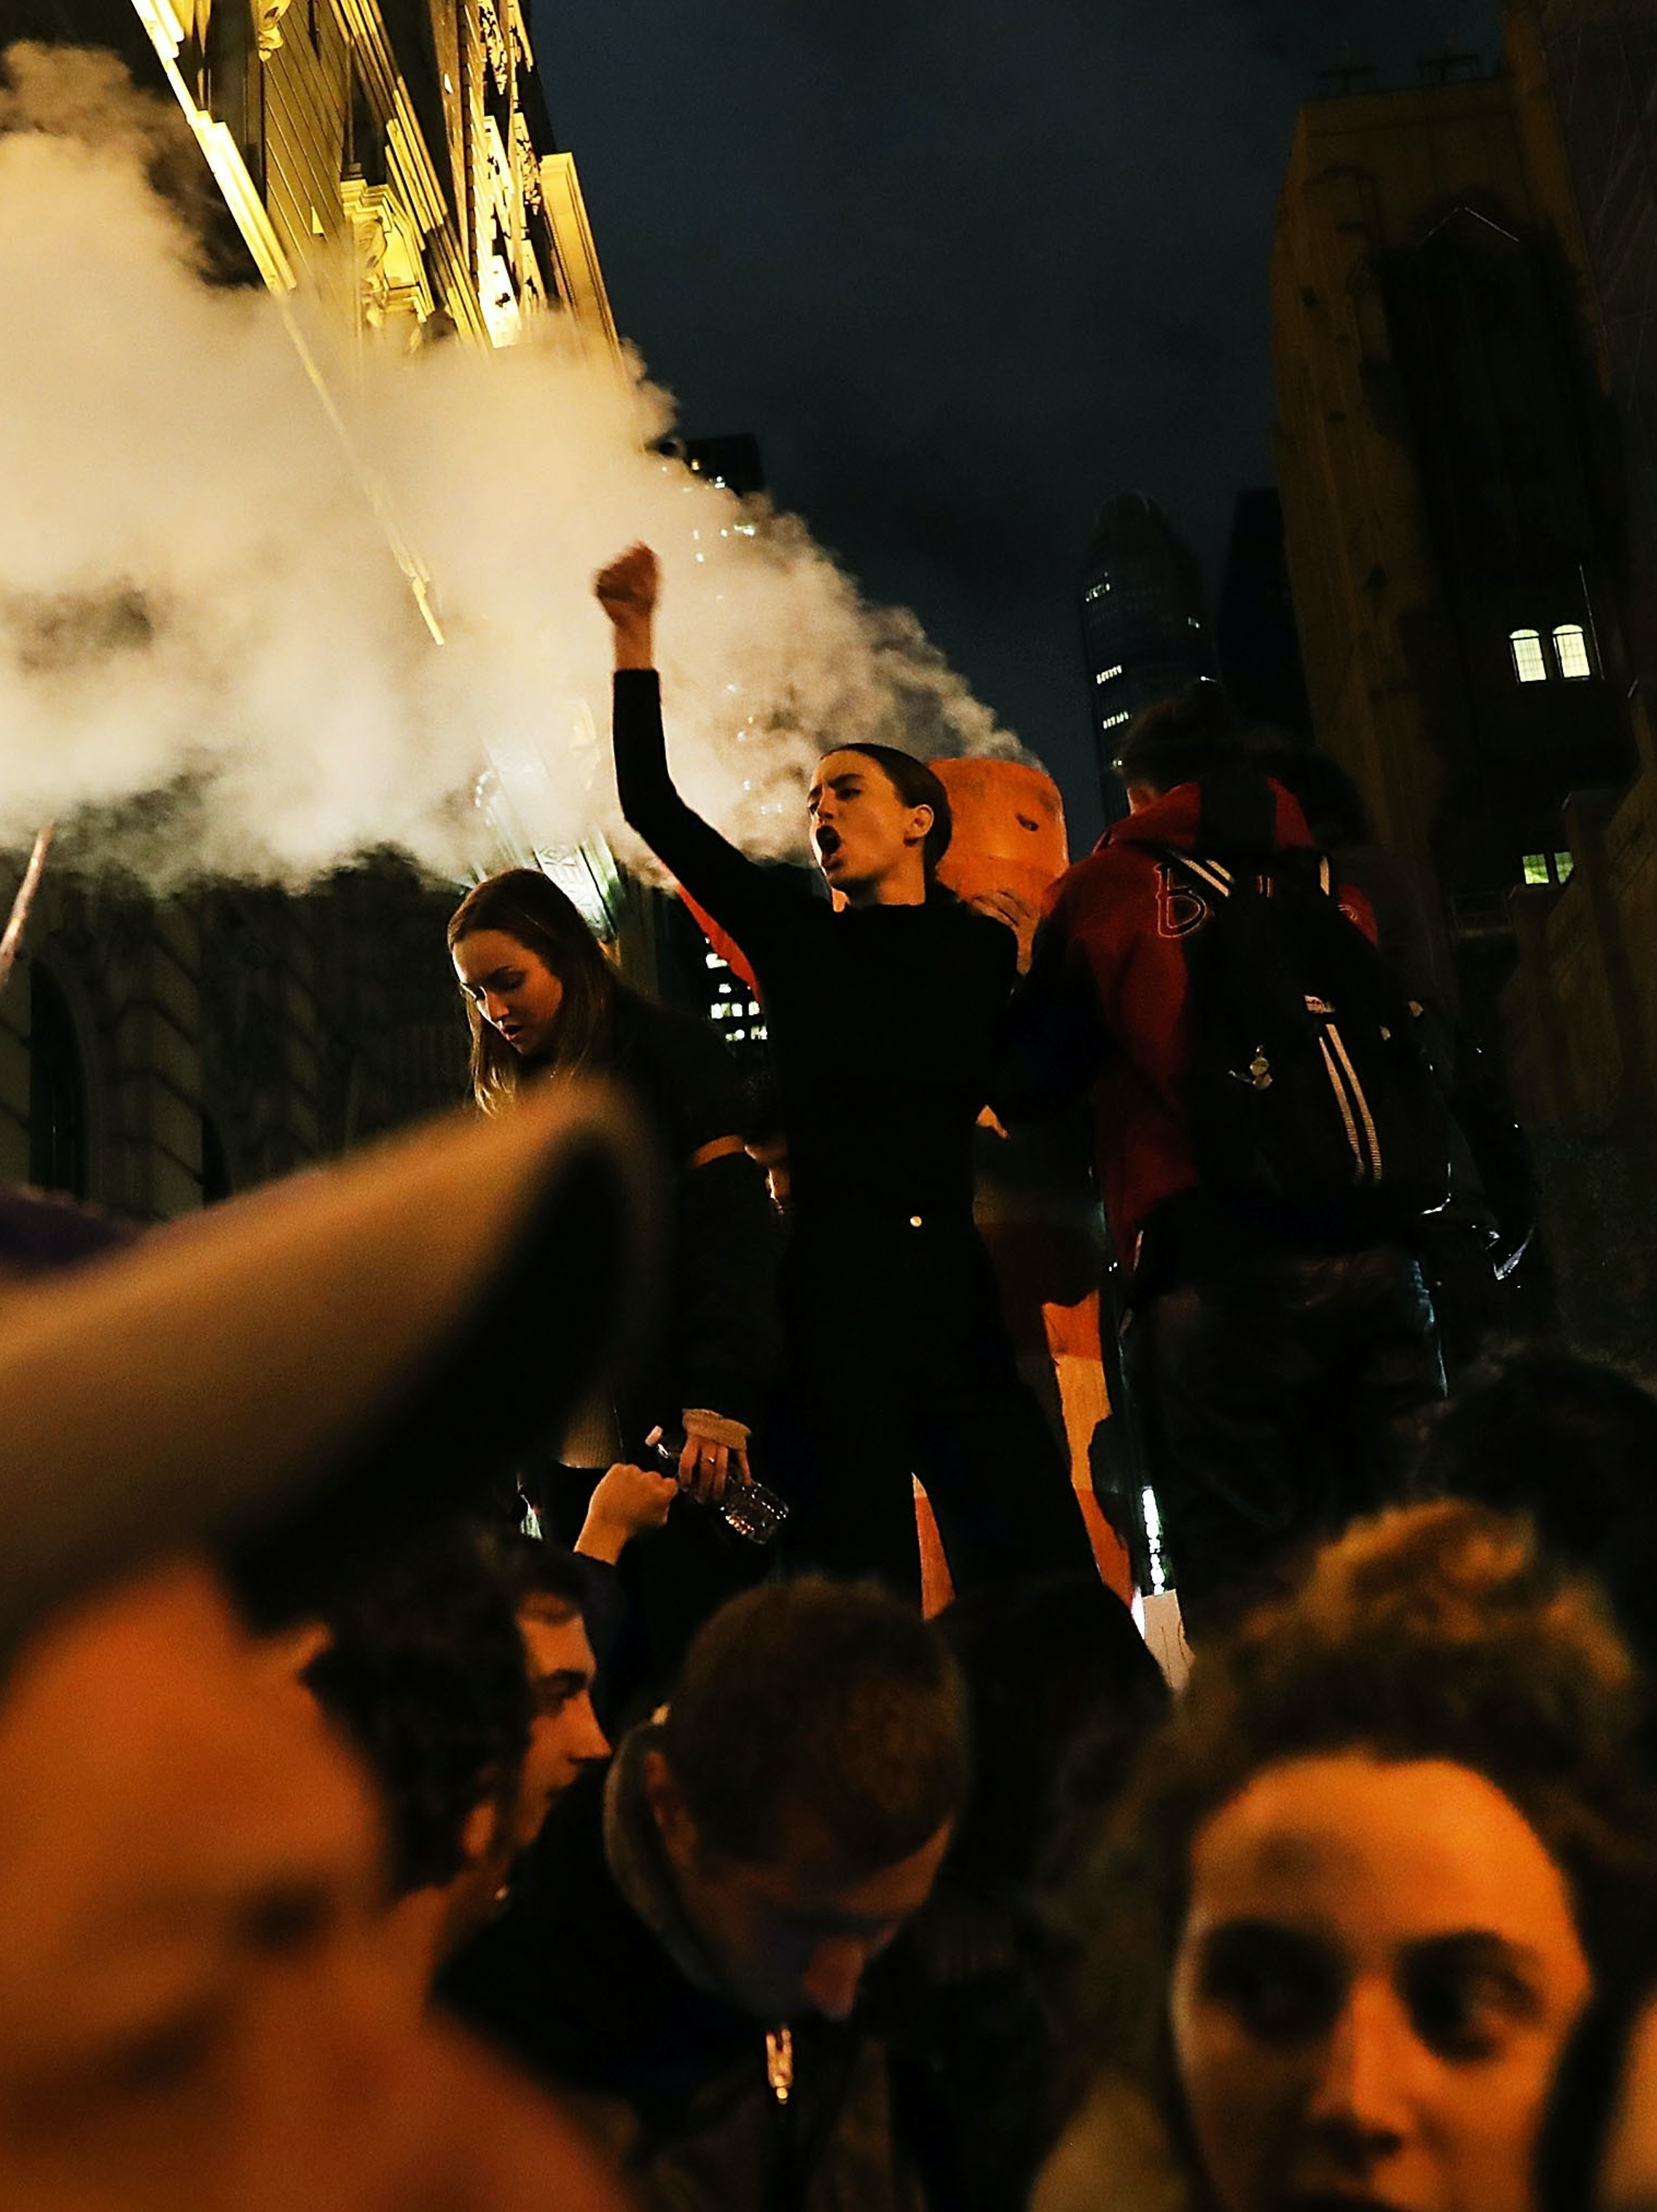 NEW YORK, NY - NOVEMBER 09:  Anti-Trump protesters shut down 5th Avenue in front of Trump Tower as New Yorkers react to the election of Donald Trump as president of the United States on November 9, 2016 in New York City. People around the country and the world are stunned with the outcome of the election for the 45th president.  (Photo by Spencer Platt/Getty Images)